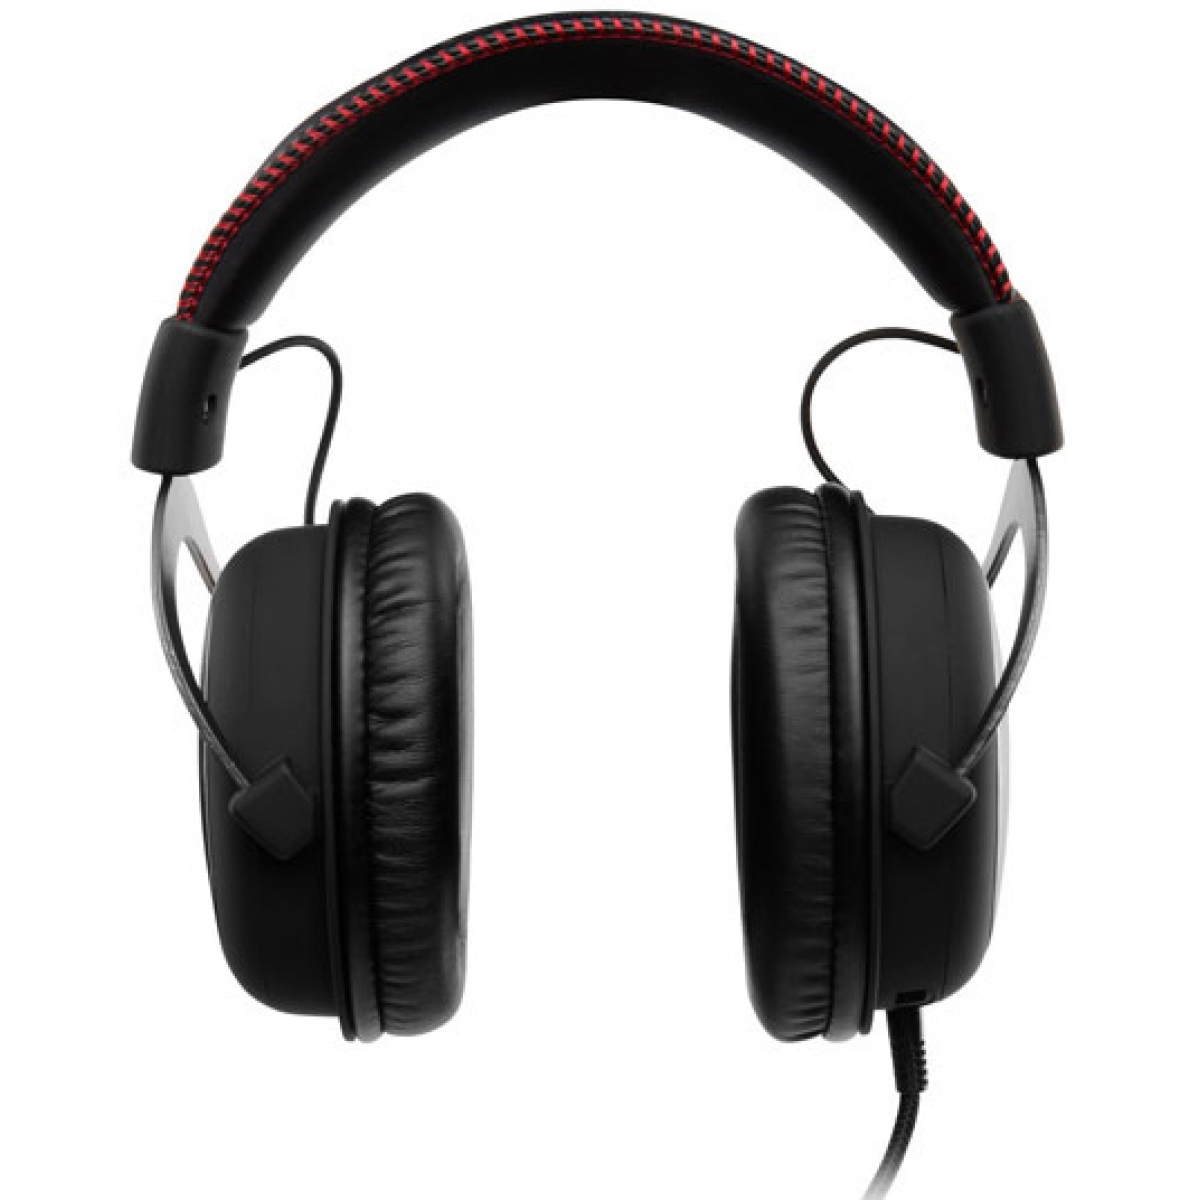 Headset HyperX Cloud Core Kingston Red/Black KHX-HSCC-BK-LR